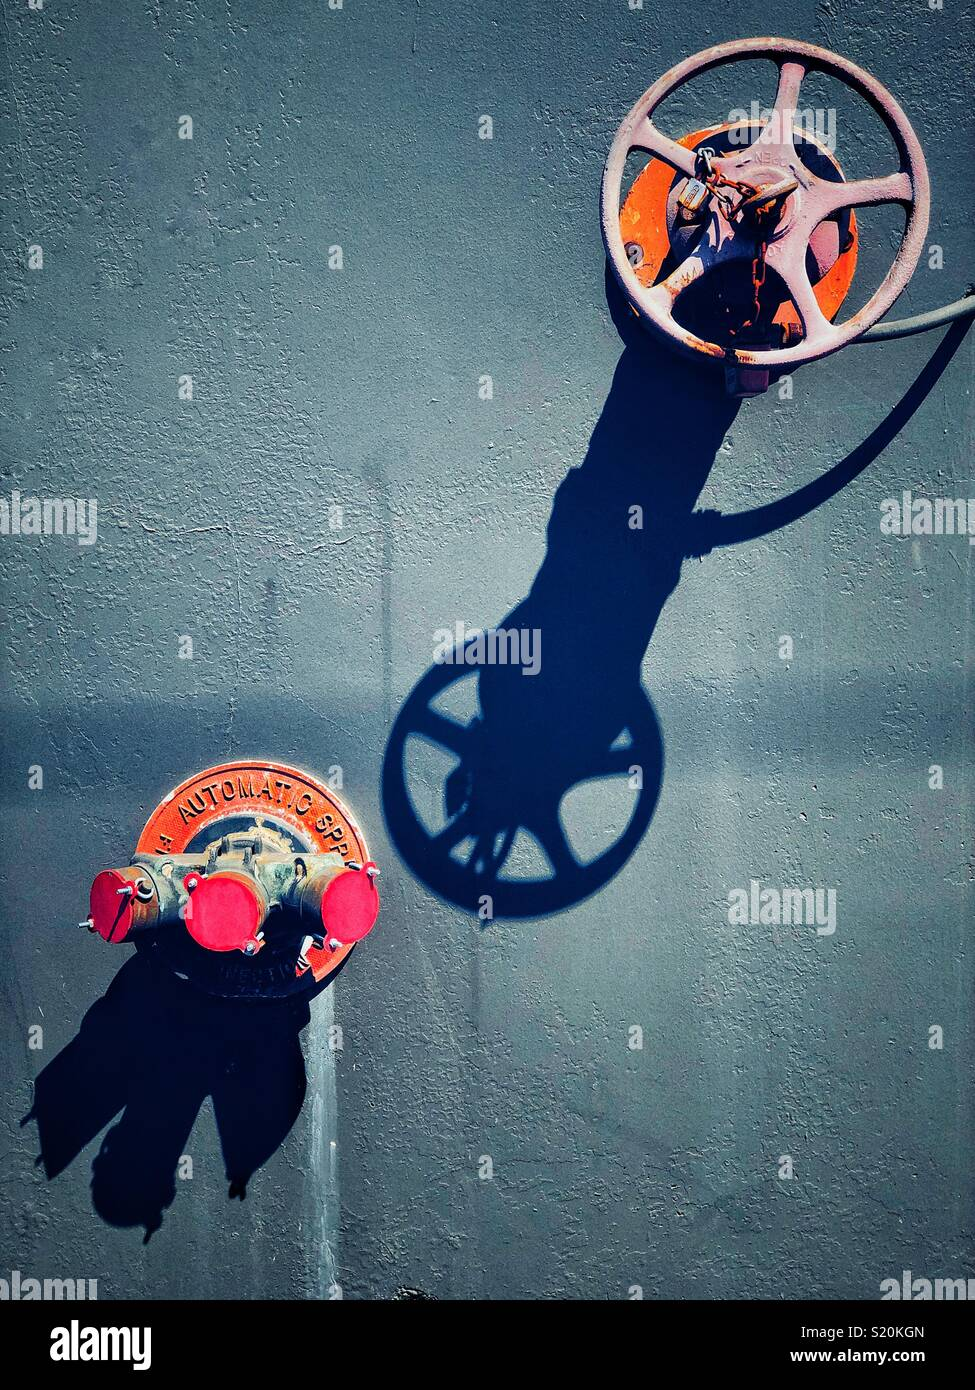 Fire house attachment and turning wheel on the wall with long shadows - Stock Image